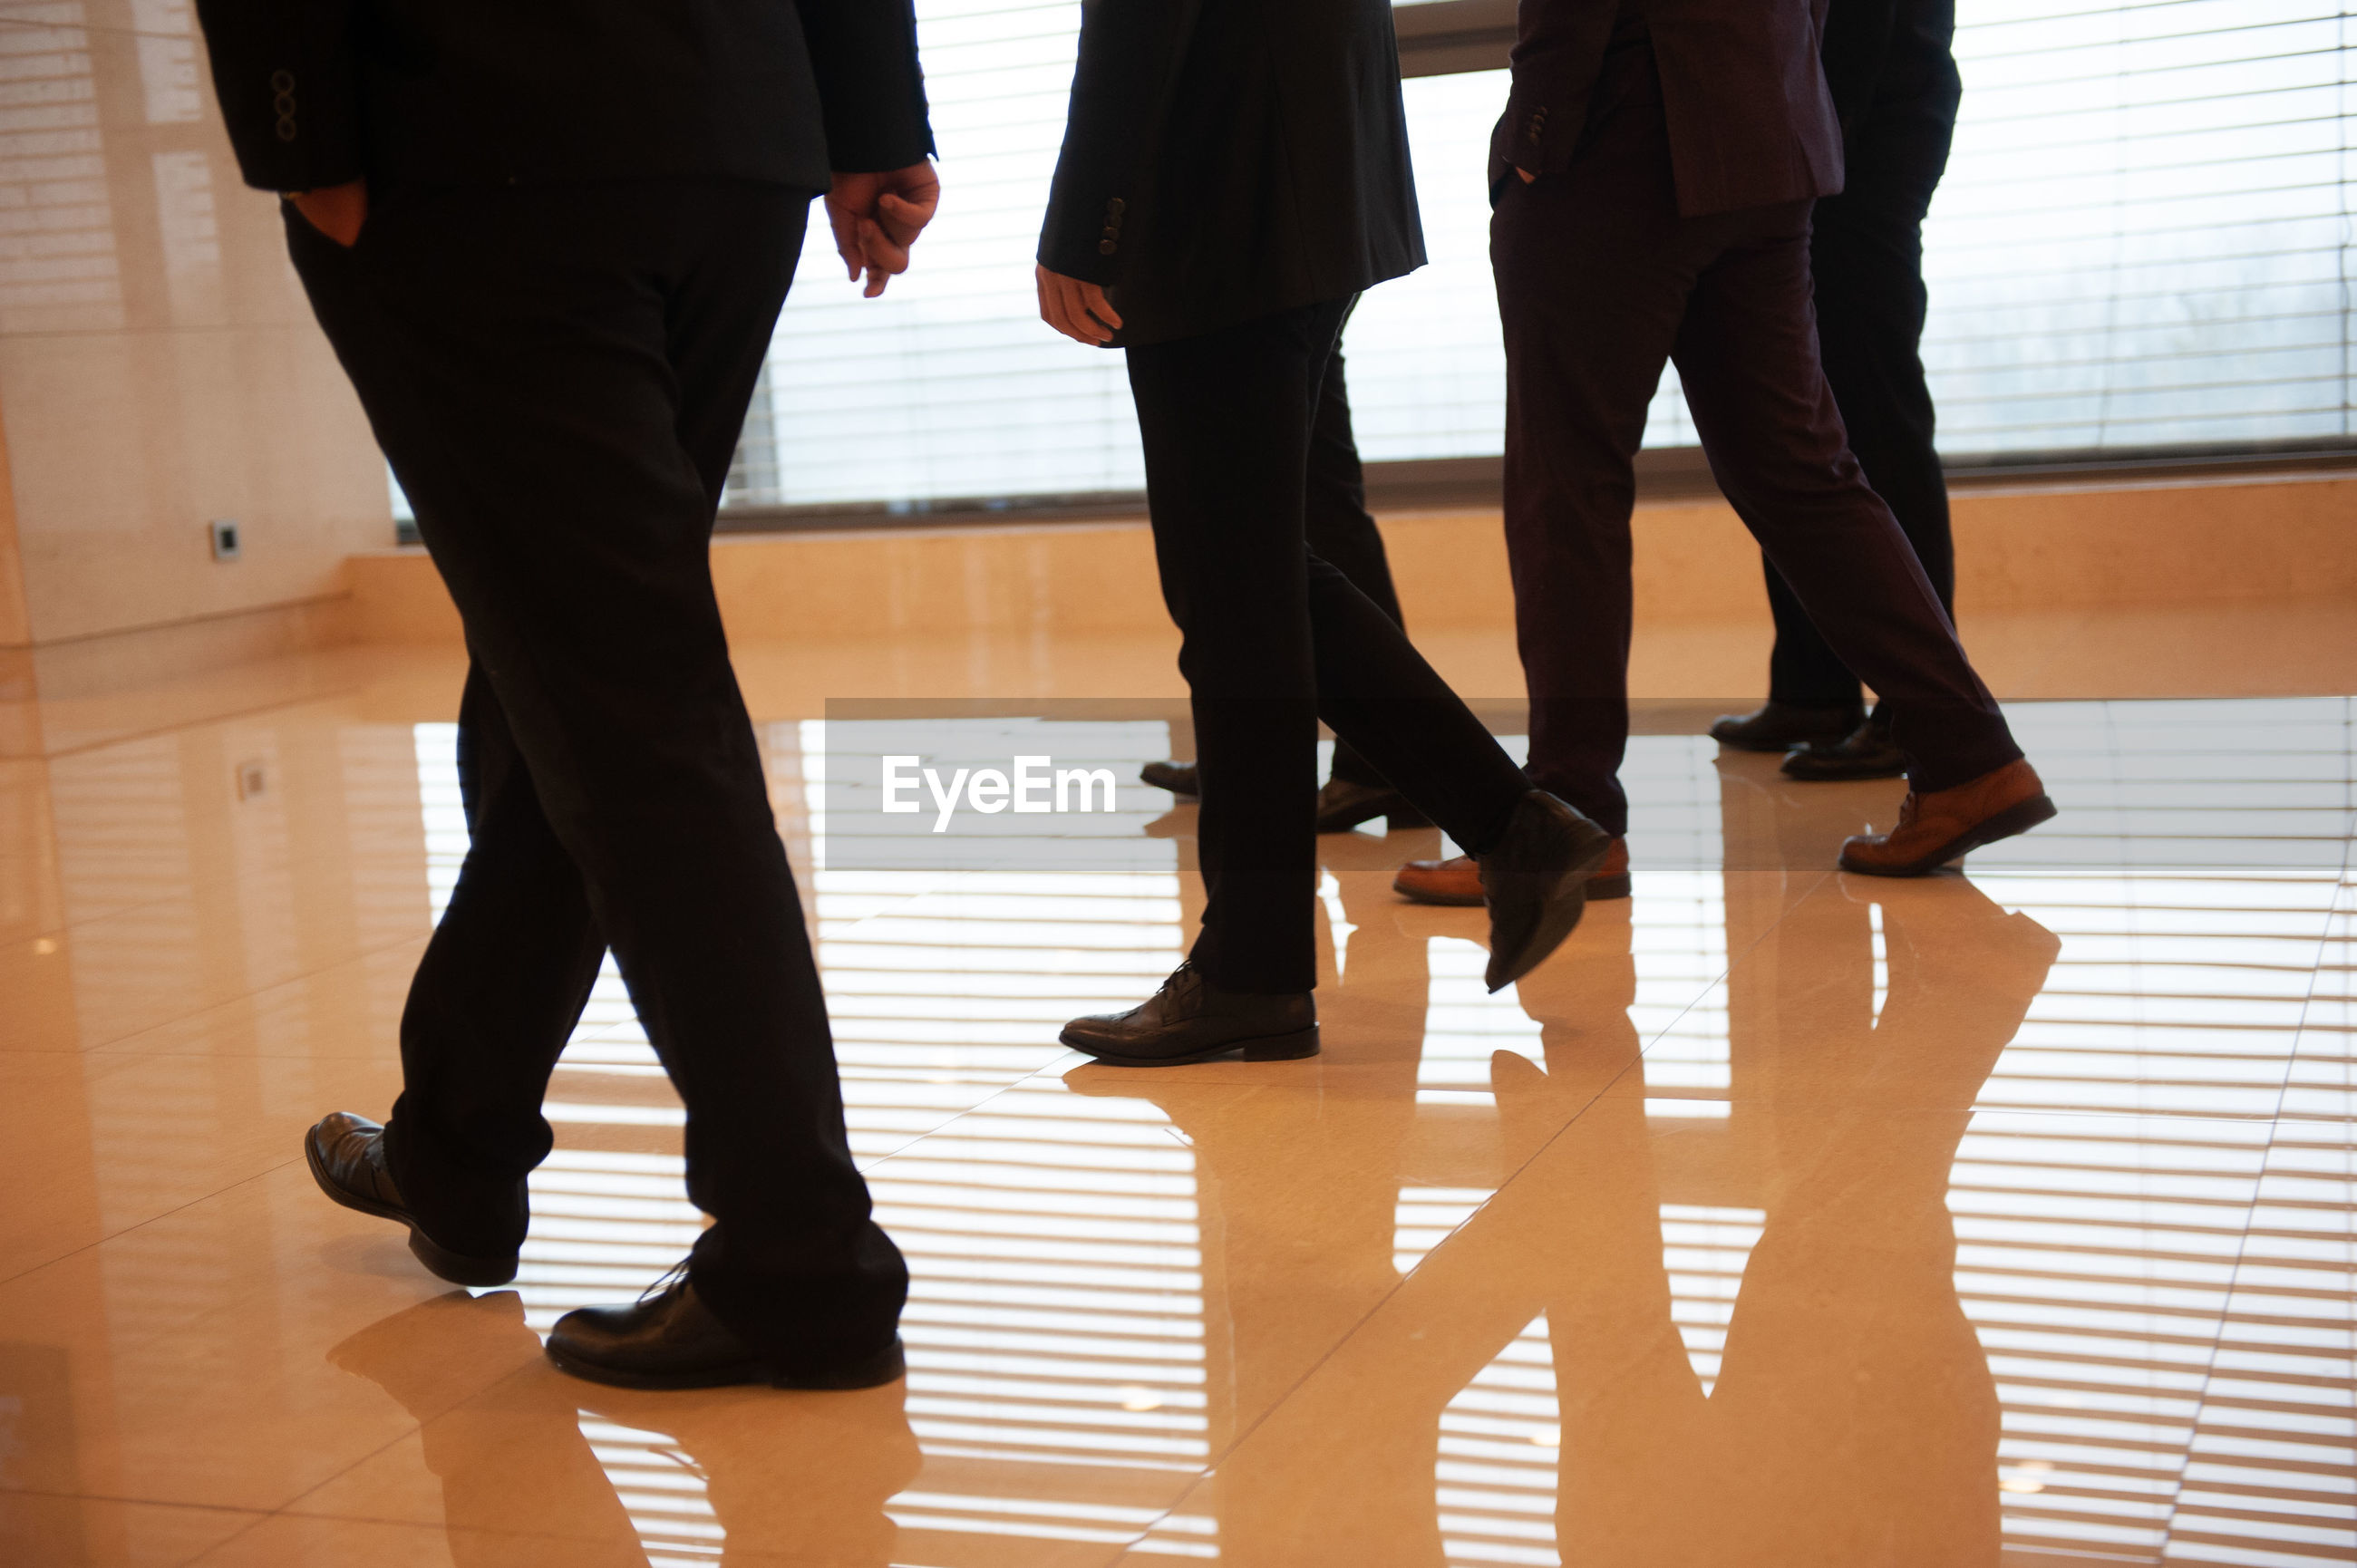 Low section of business people walking on floor